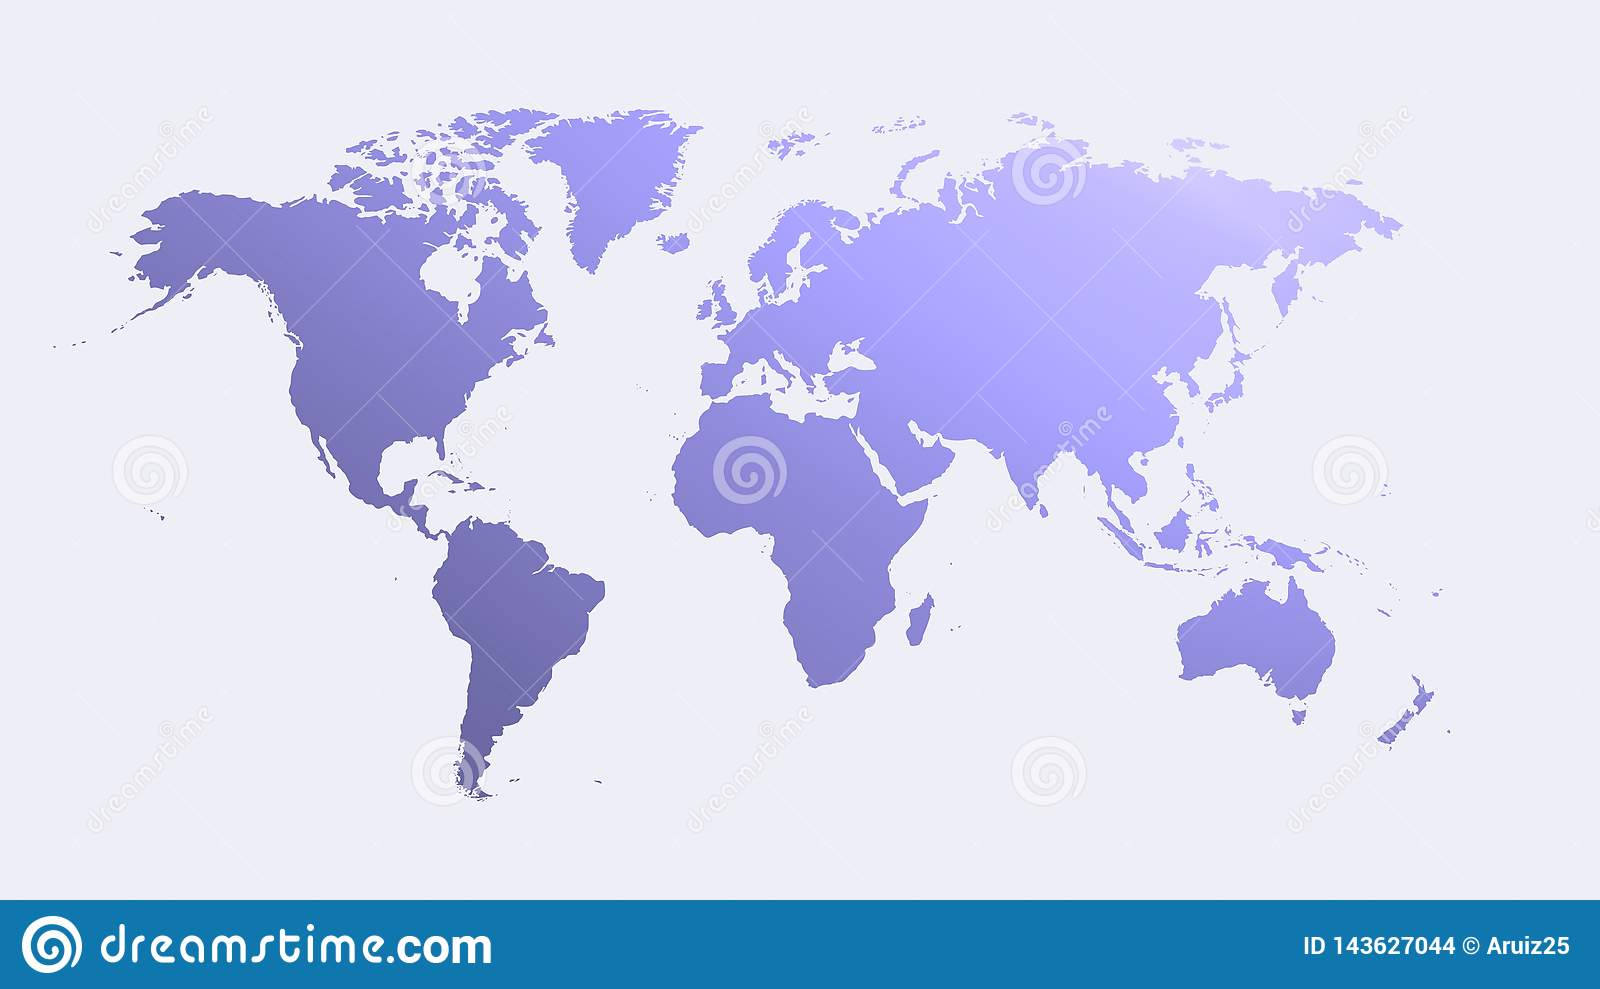 Soft Map Of The World With Blue Degree Stock Illustration ... Degree Map on covering map, major map, tropics of cancer and capricorn on map, learning map, career map, science map, masters map, sextant map, scale map, engineering map, gsn map, student map, betti number, pisa italy tourist map, program map, key map, cause map, complete map, winding number, class map, mba map, continuous function, simplicial complex, job map, education map,